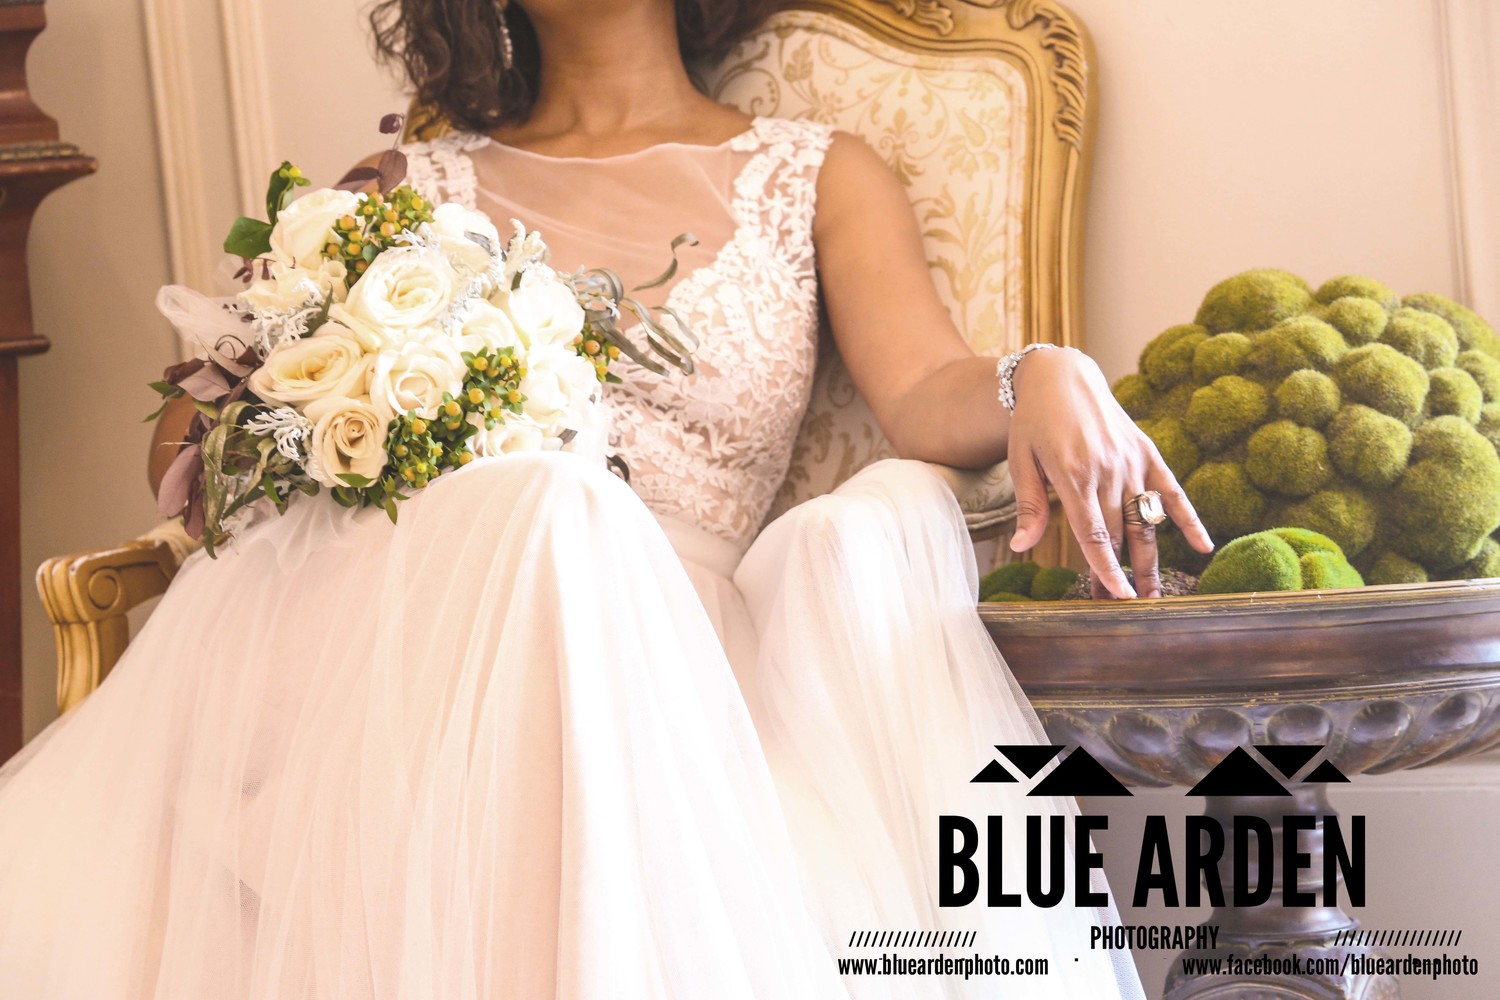 North Carolina Inspired Styled Wedding Shoot 7